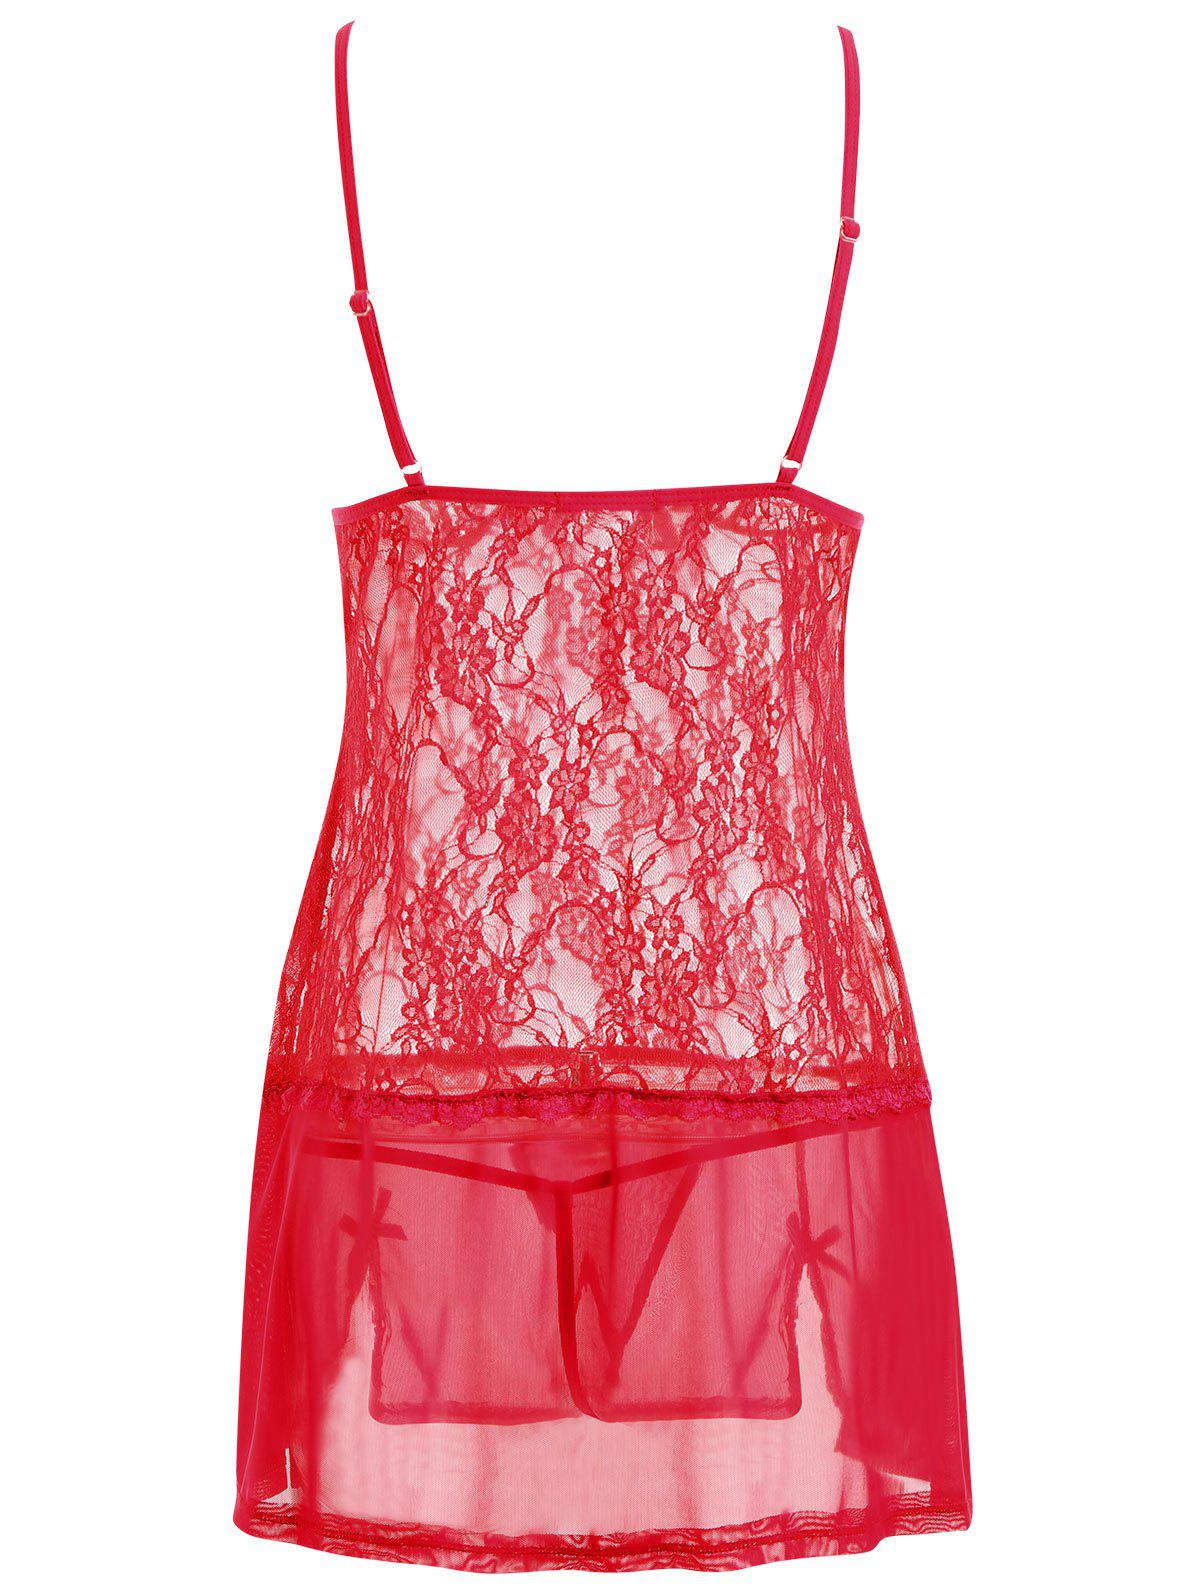 Lace Slip See Thru Lingerie Babydoll - RED S